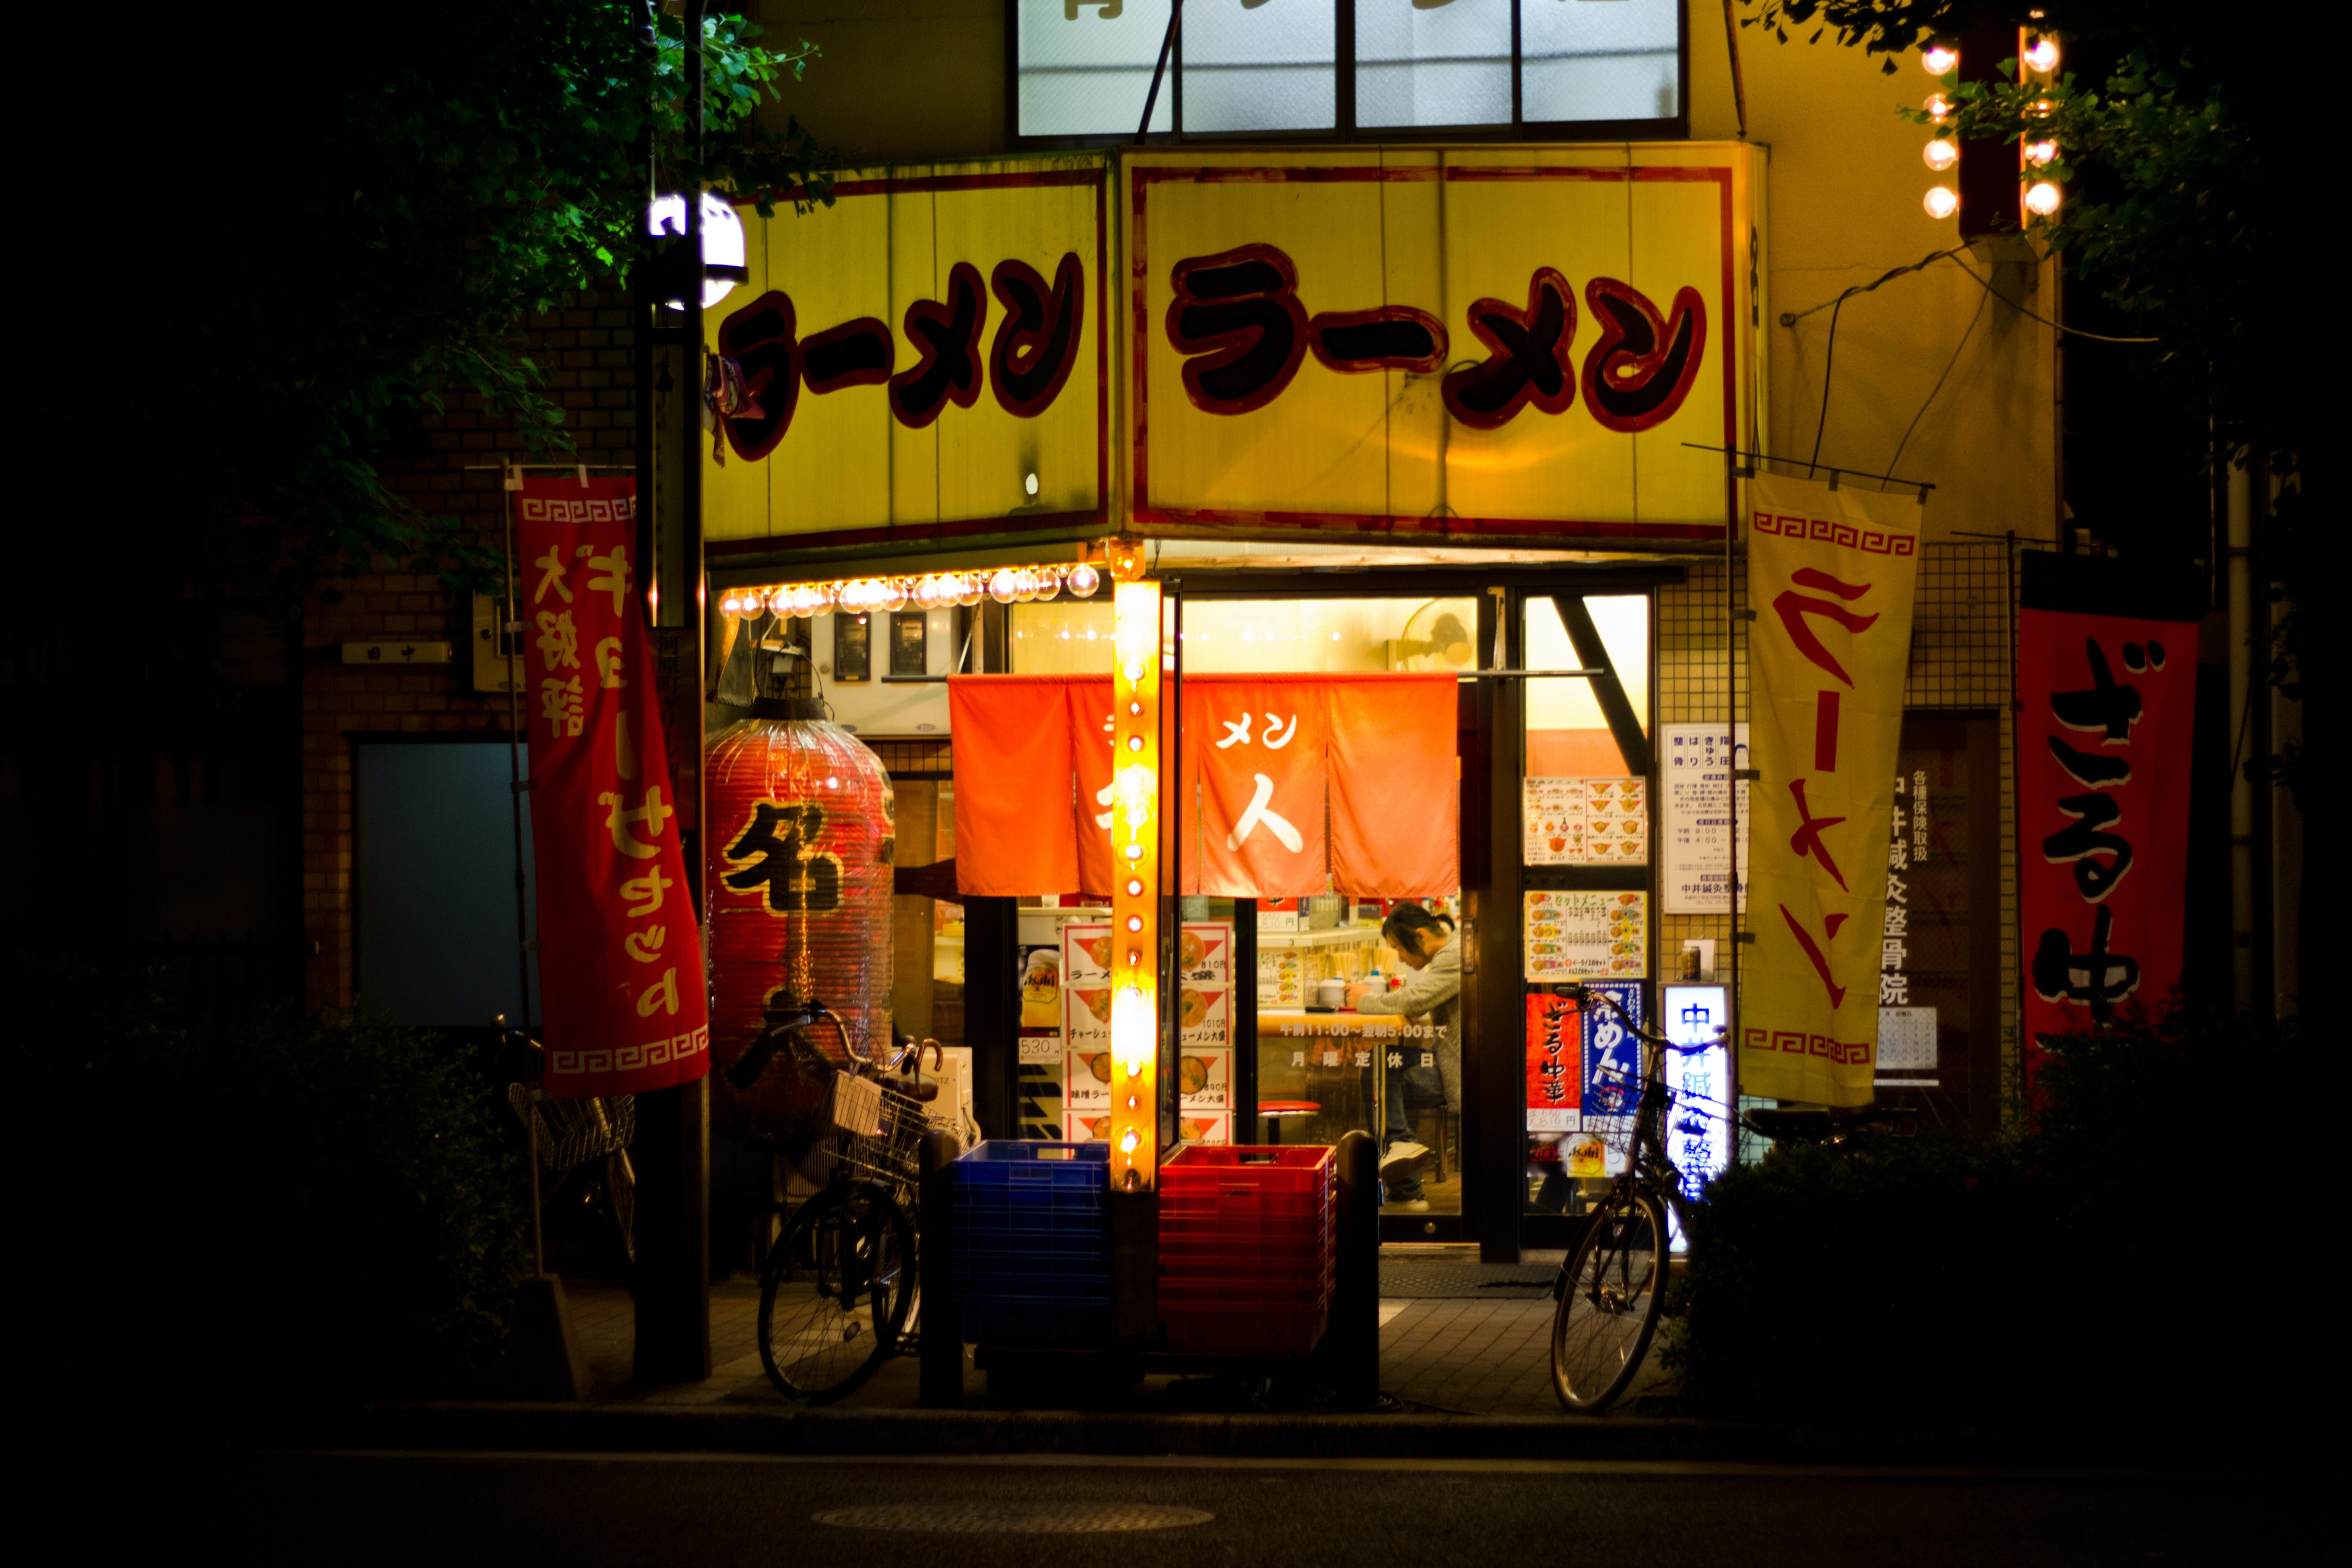 Storefront of an Asian restaurant at a city market at night